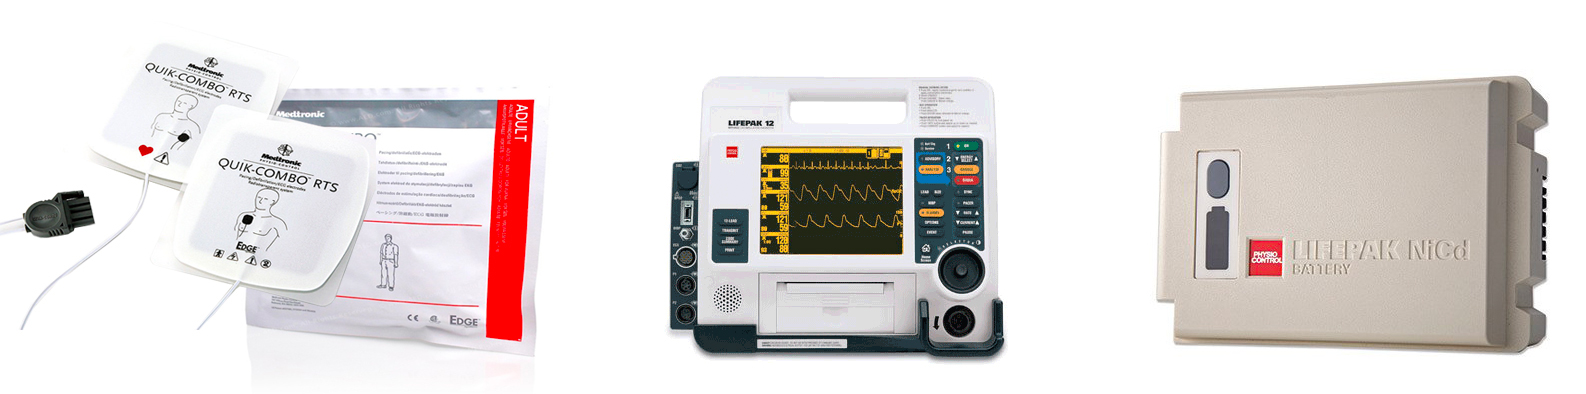 lifepak-12-set.jpg